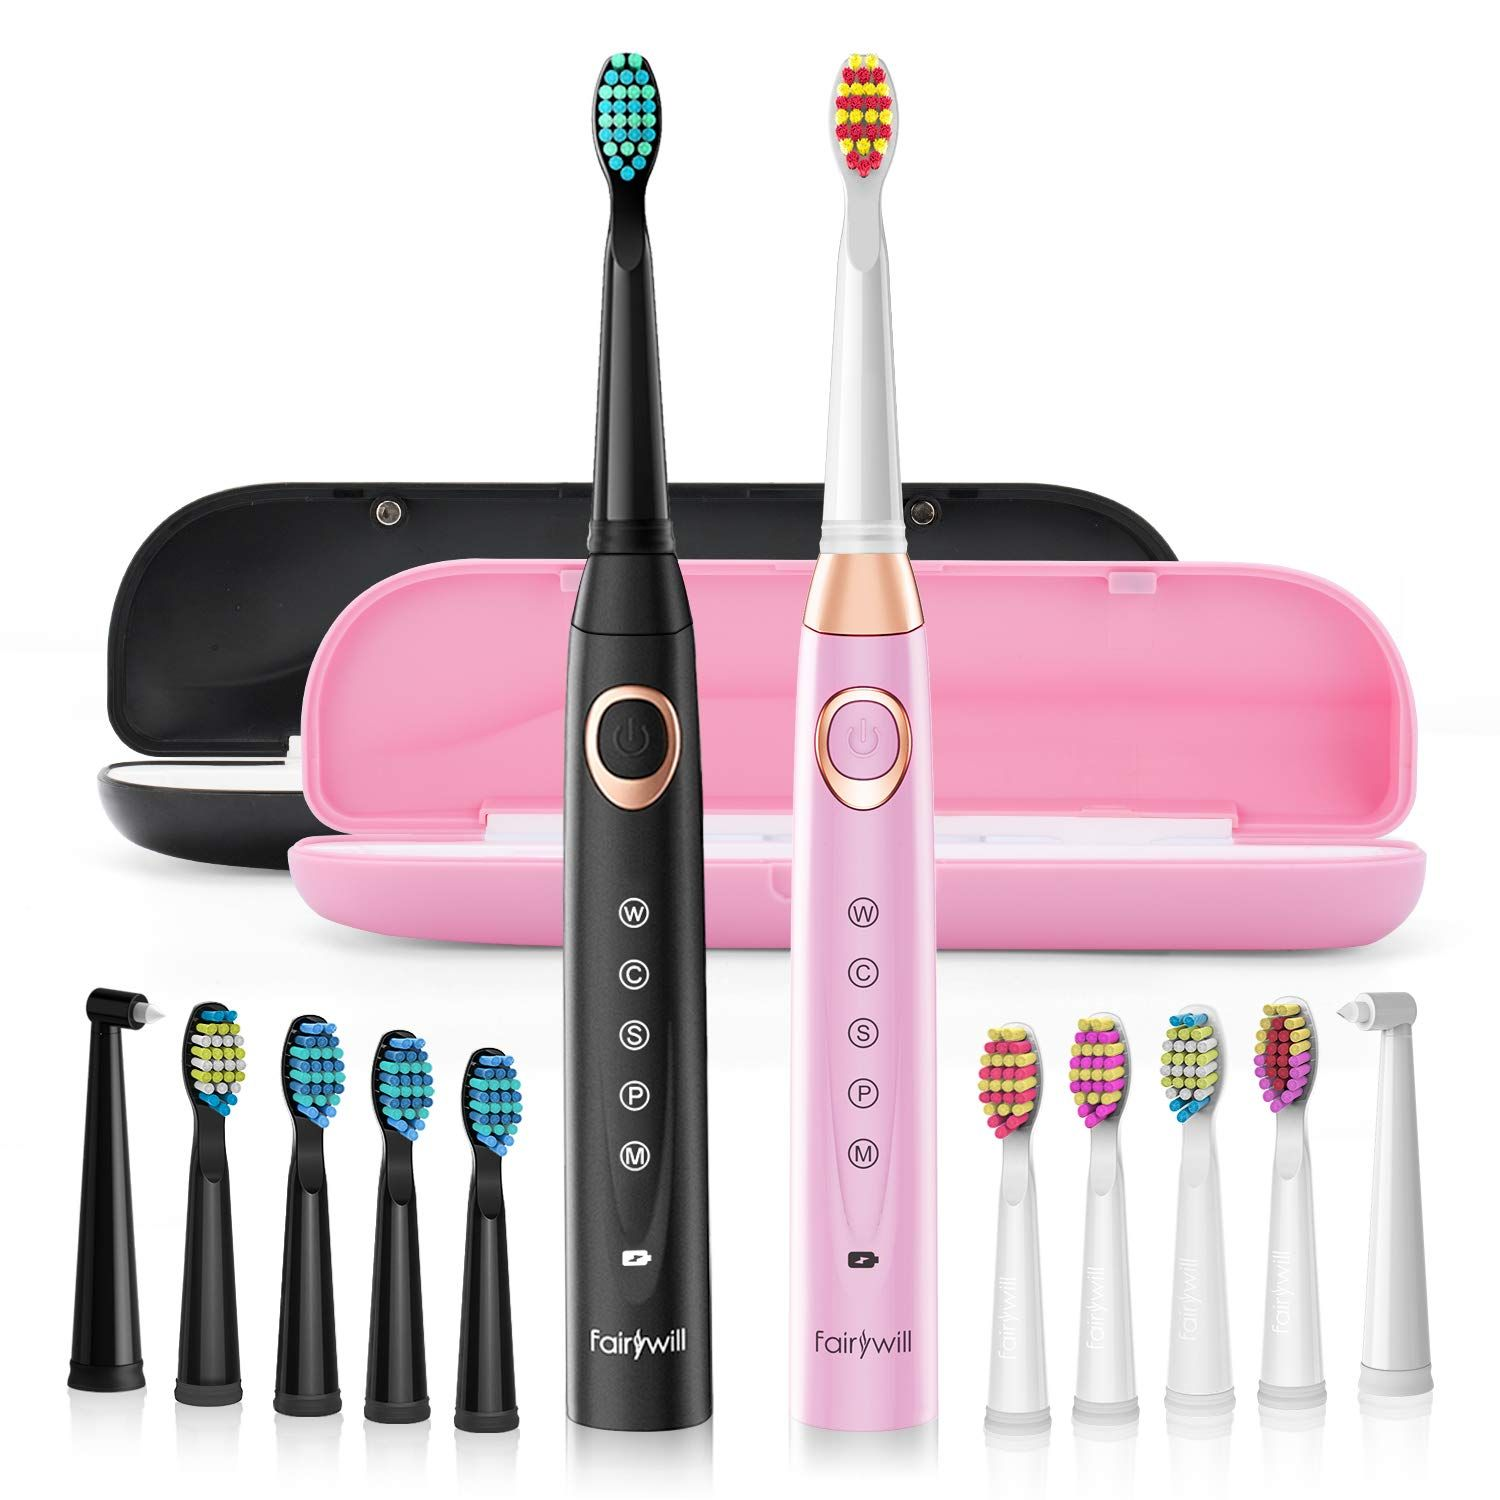 Fairywill S Electric Toothbrush Dual Set Fairywill S Sonic Toothbrush Set Is An Affordable Designed For Multiple U Black Teeth Brushing Teeth Sonic Toothbrush